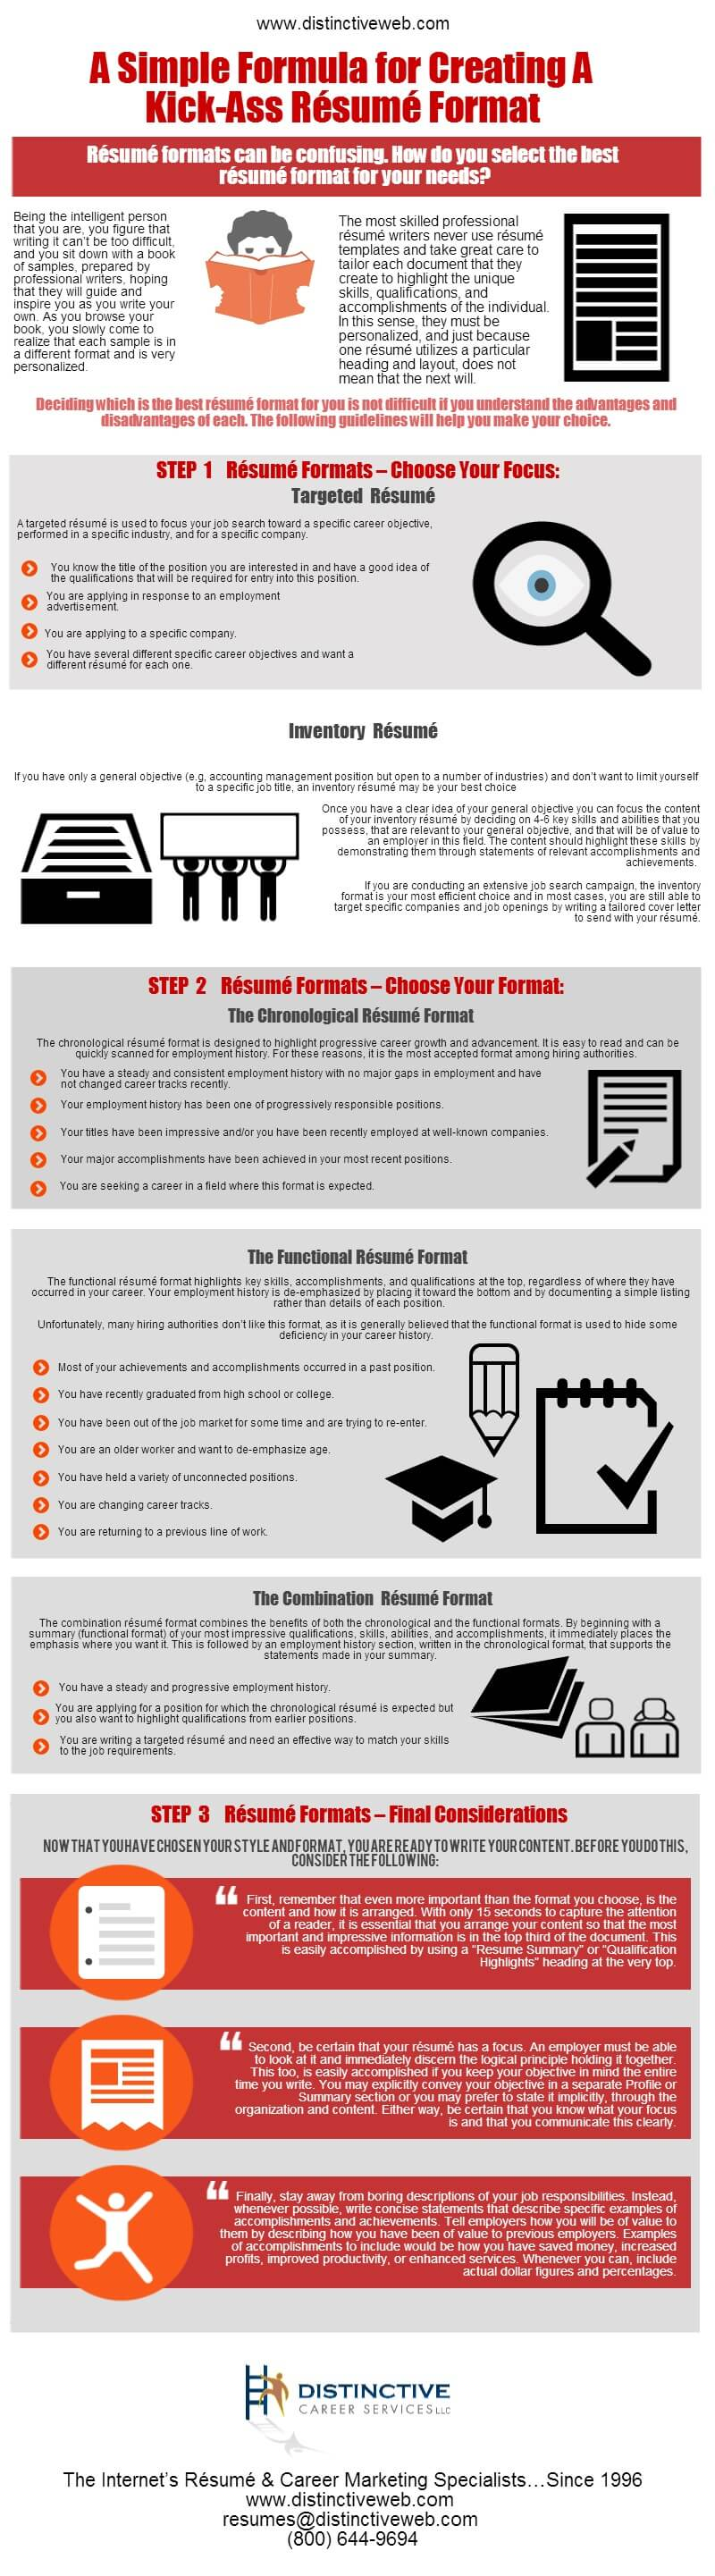 create a kick ass resume infographic kick ass resume format